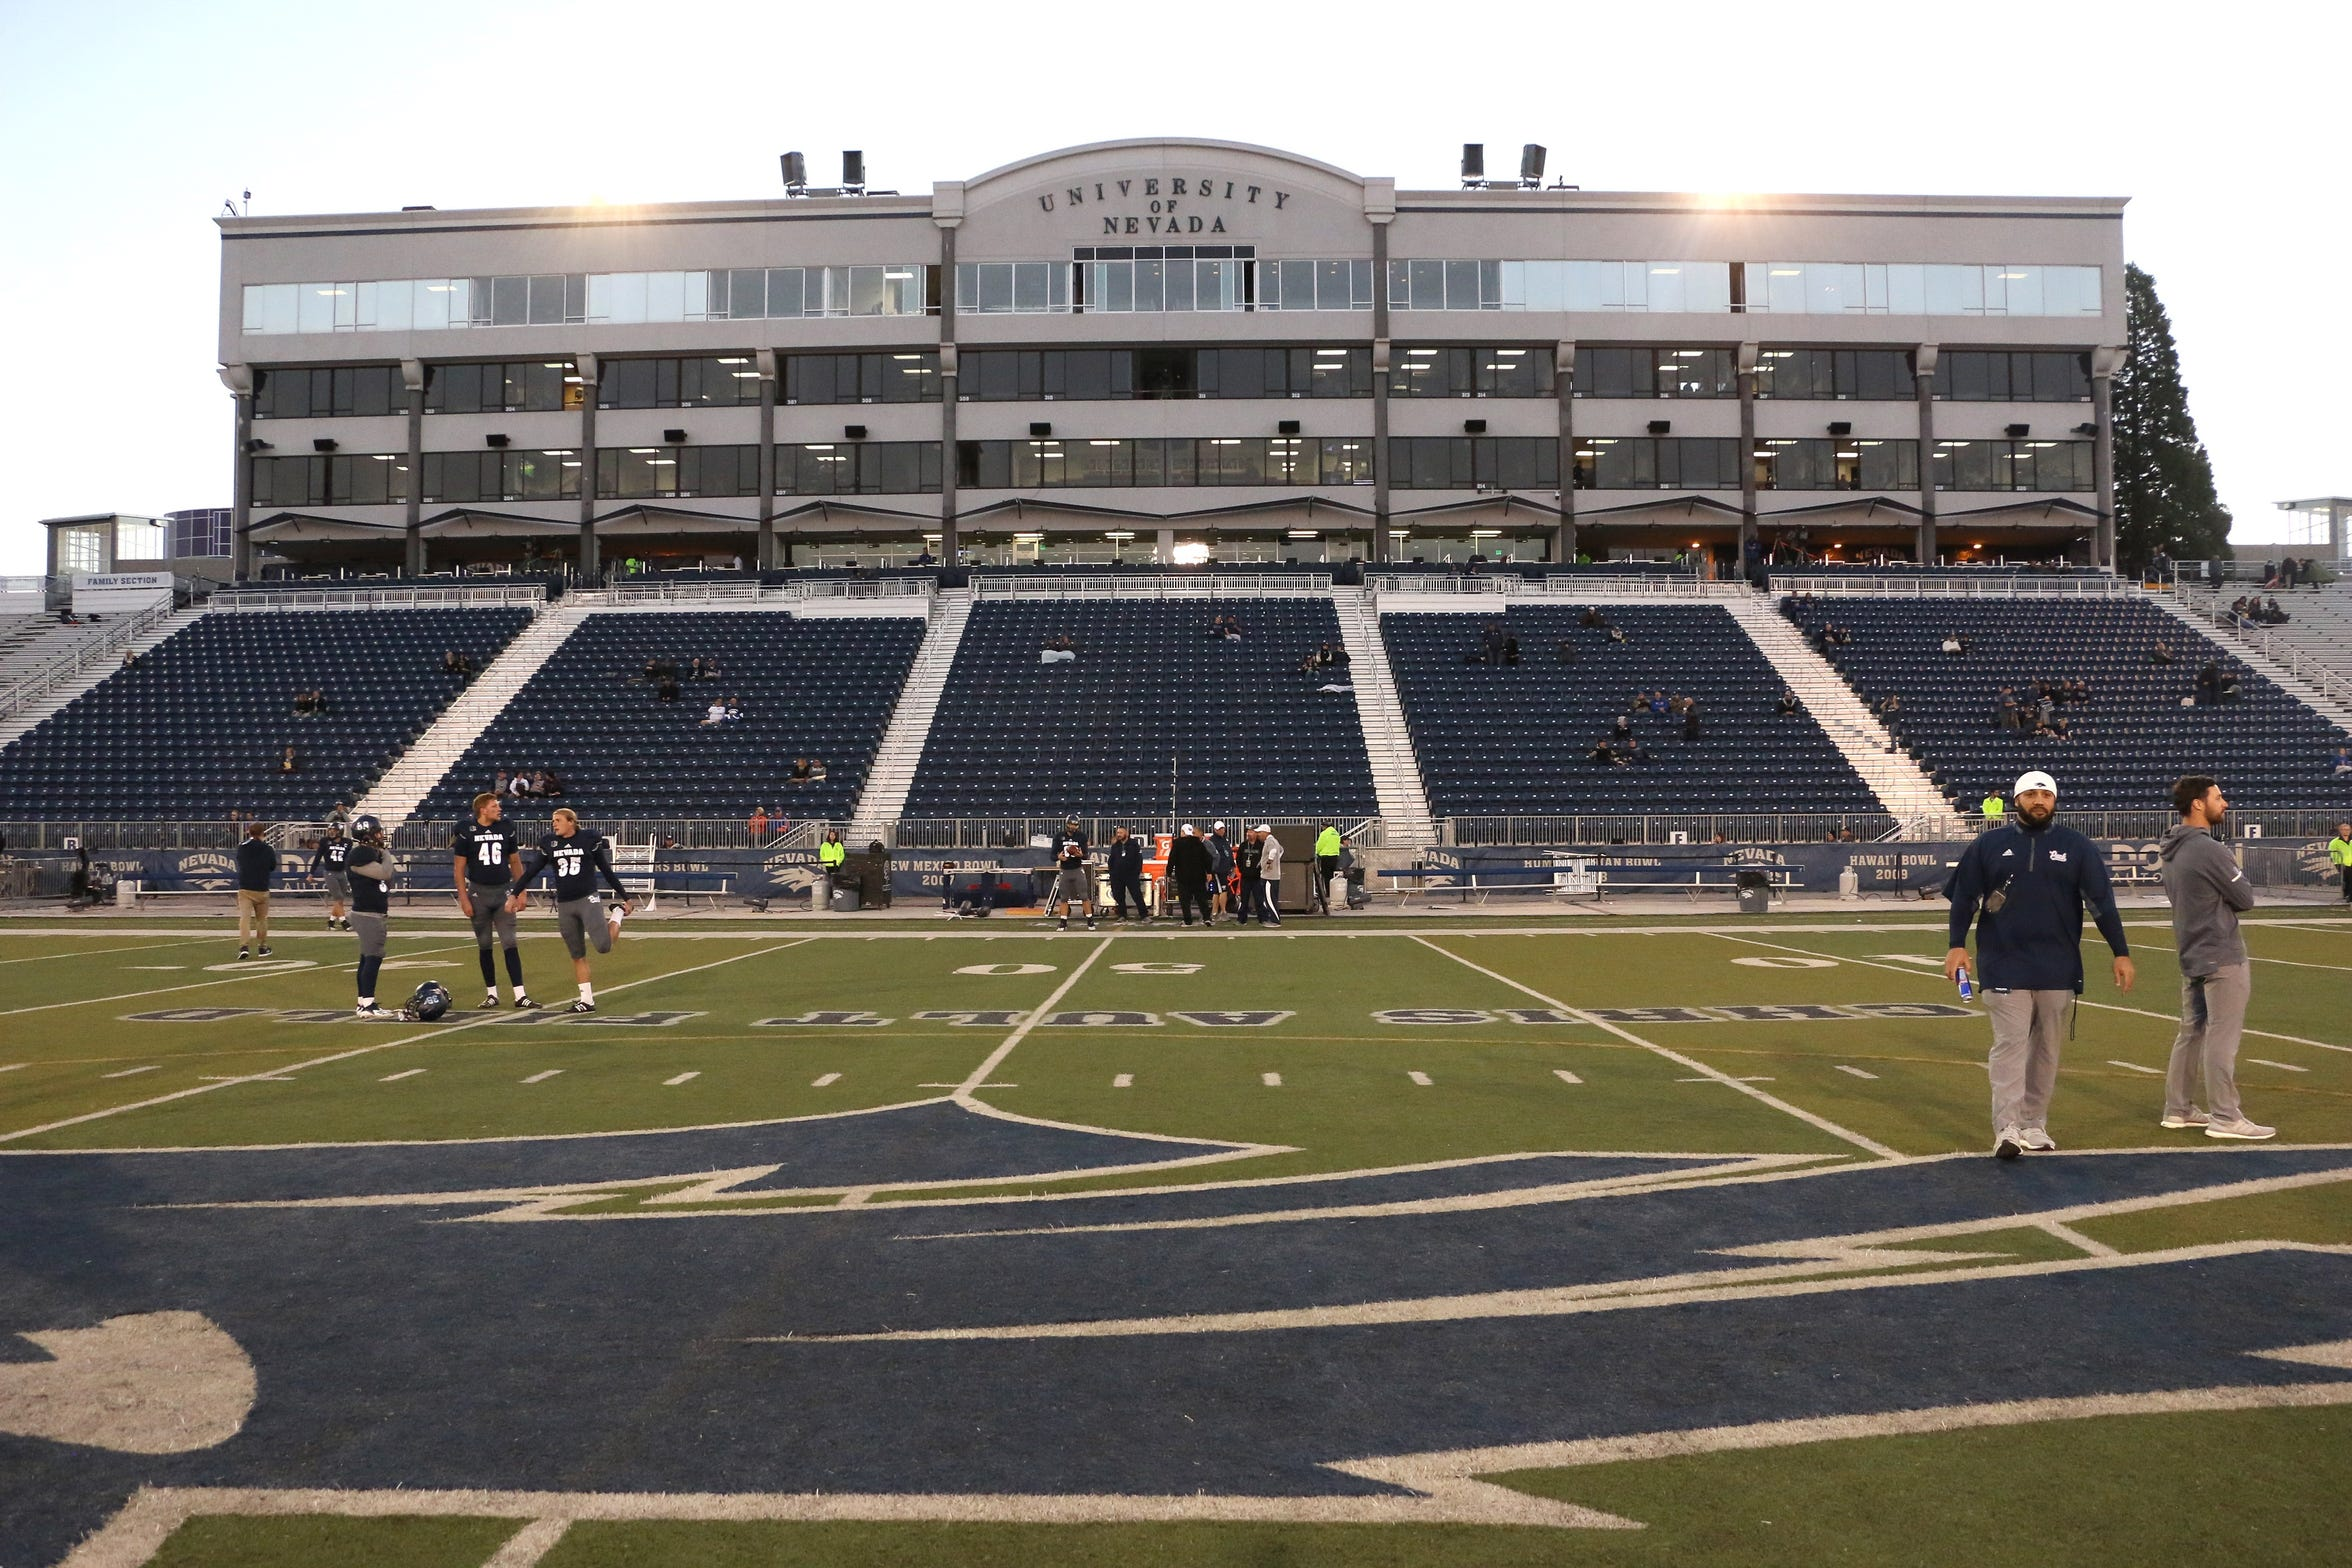 Mackay Stadium in Reno on Oct. 13, 2018.